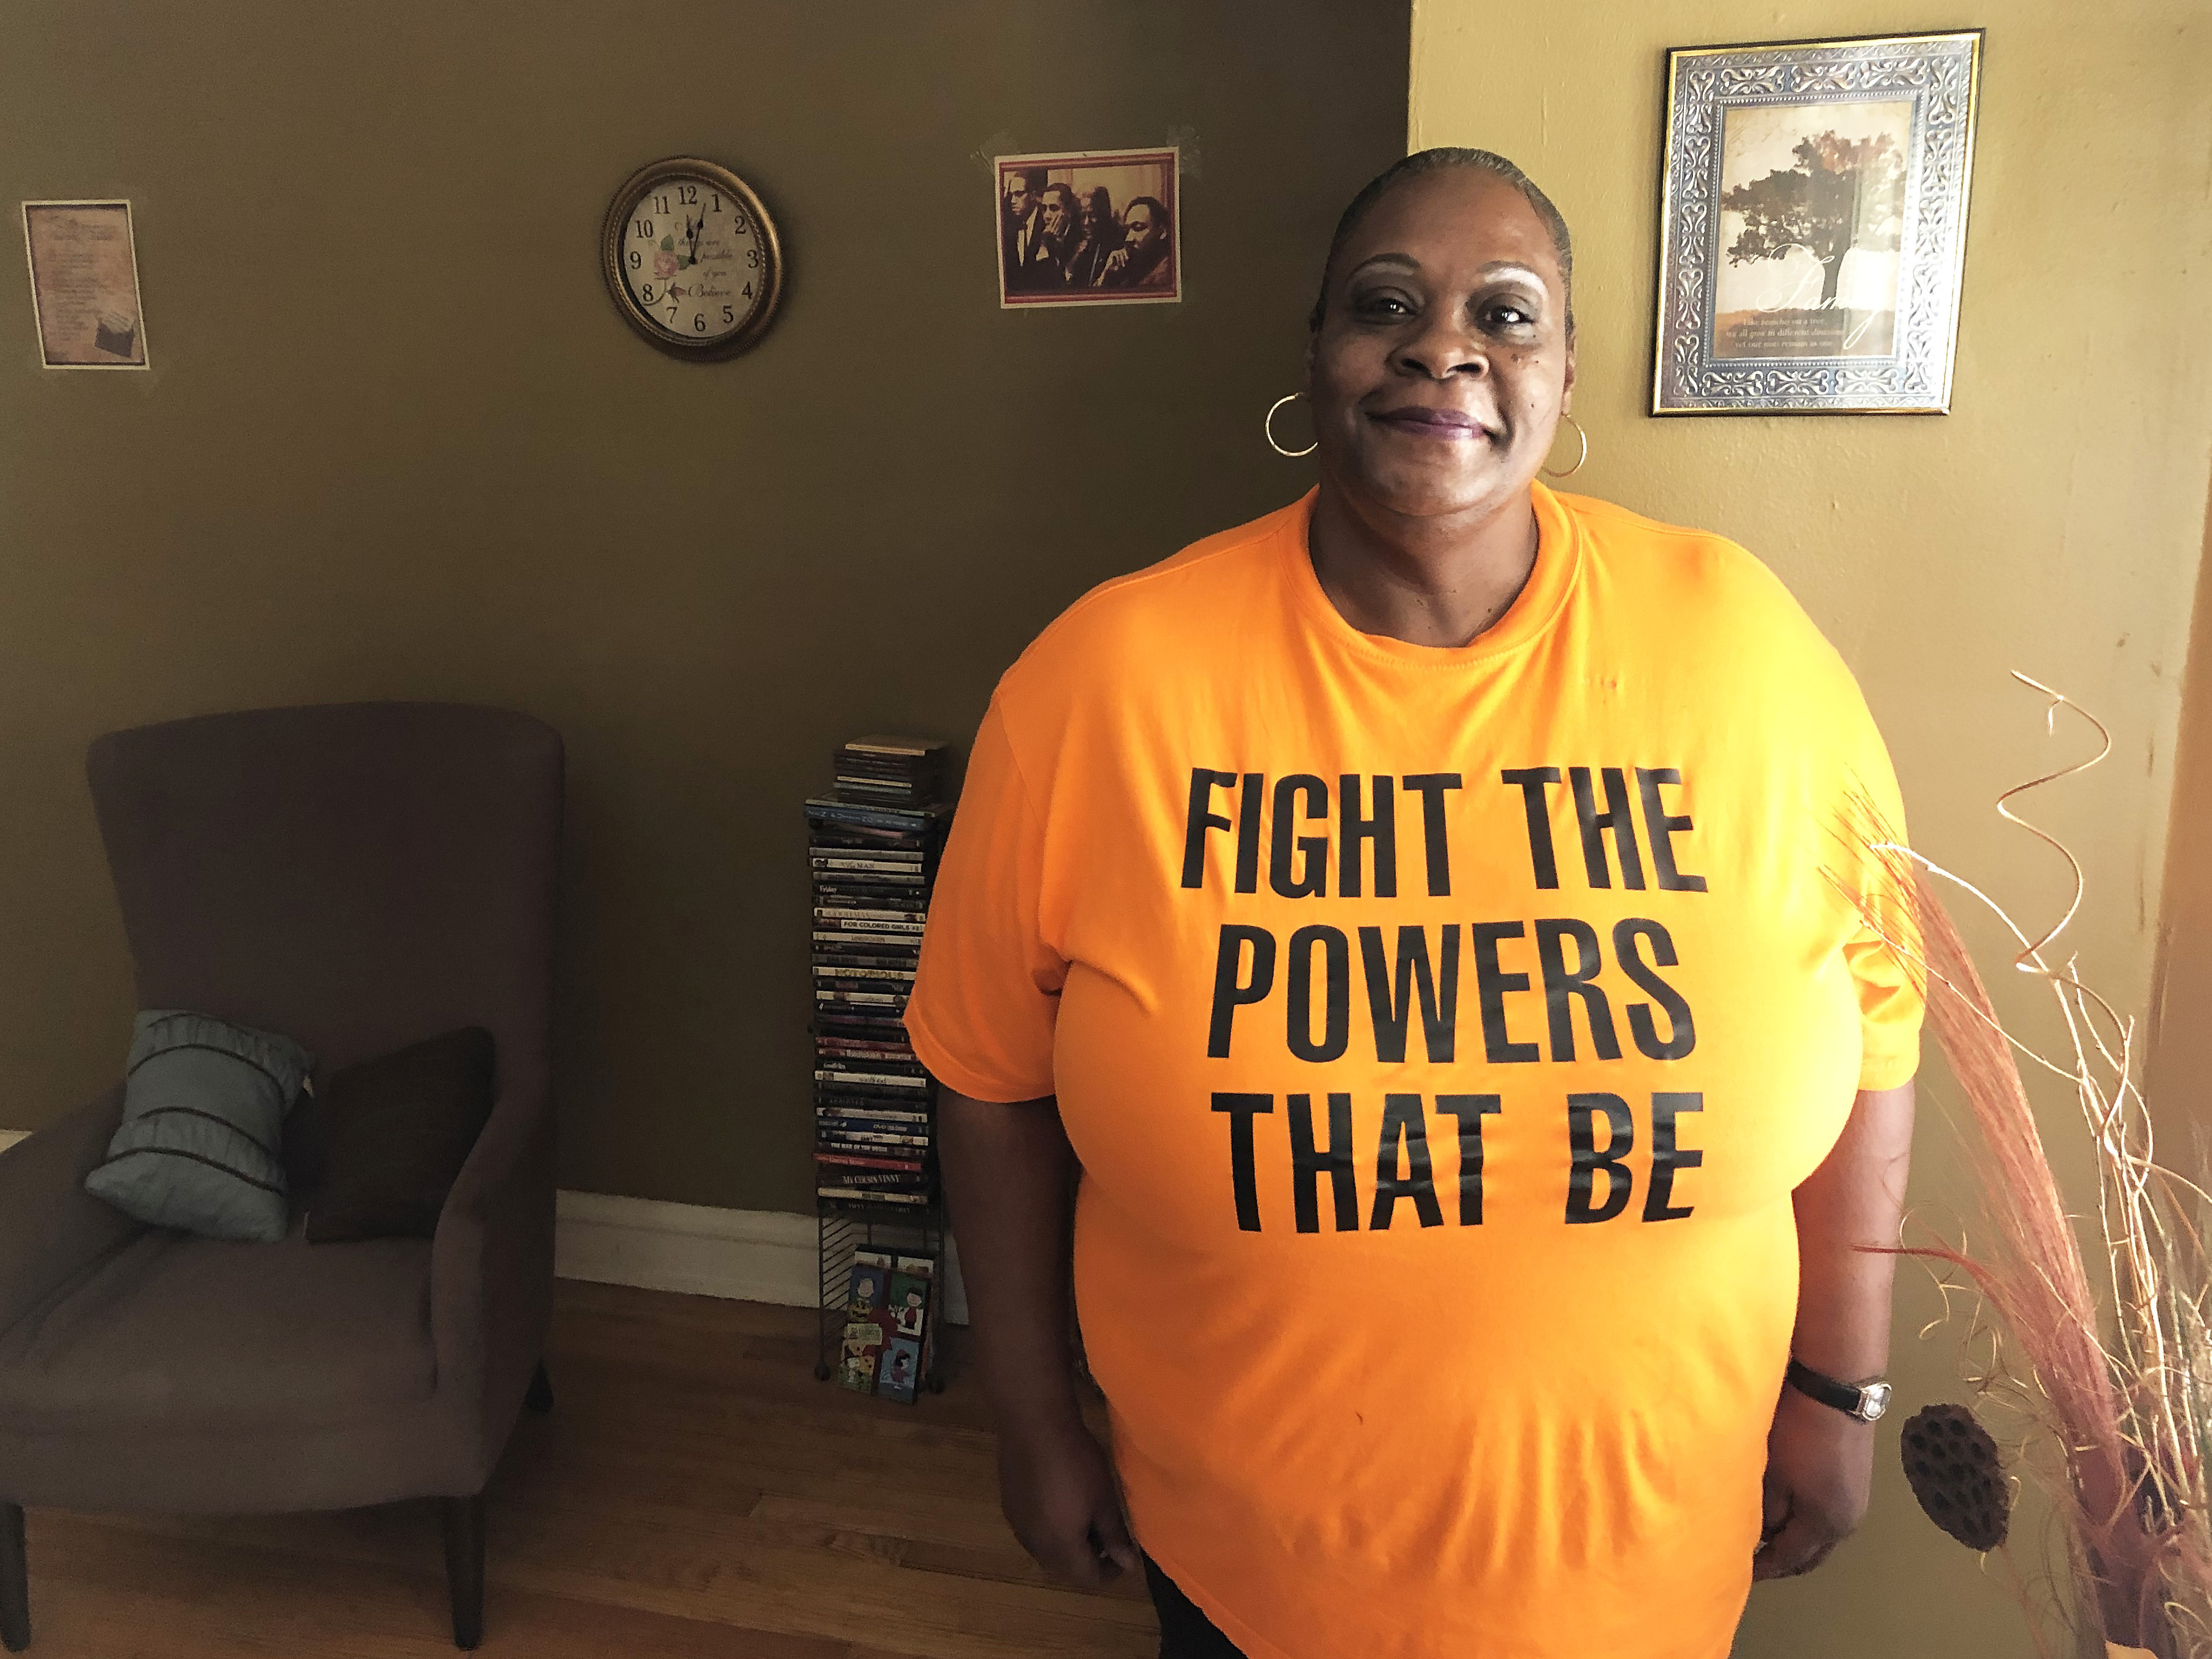 South Shore resident Trina Parker is among 43 participants in a federal housing program to prevent homelessness, helping people in danger of losing their apartments because funding to the agency that operates the program has been eliminated.